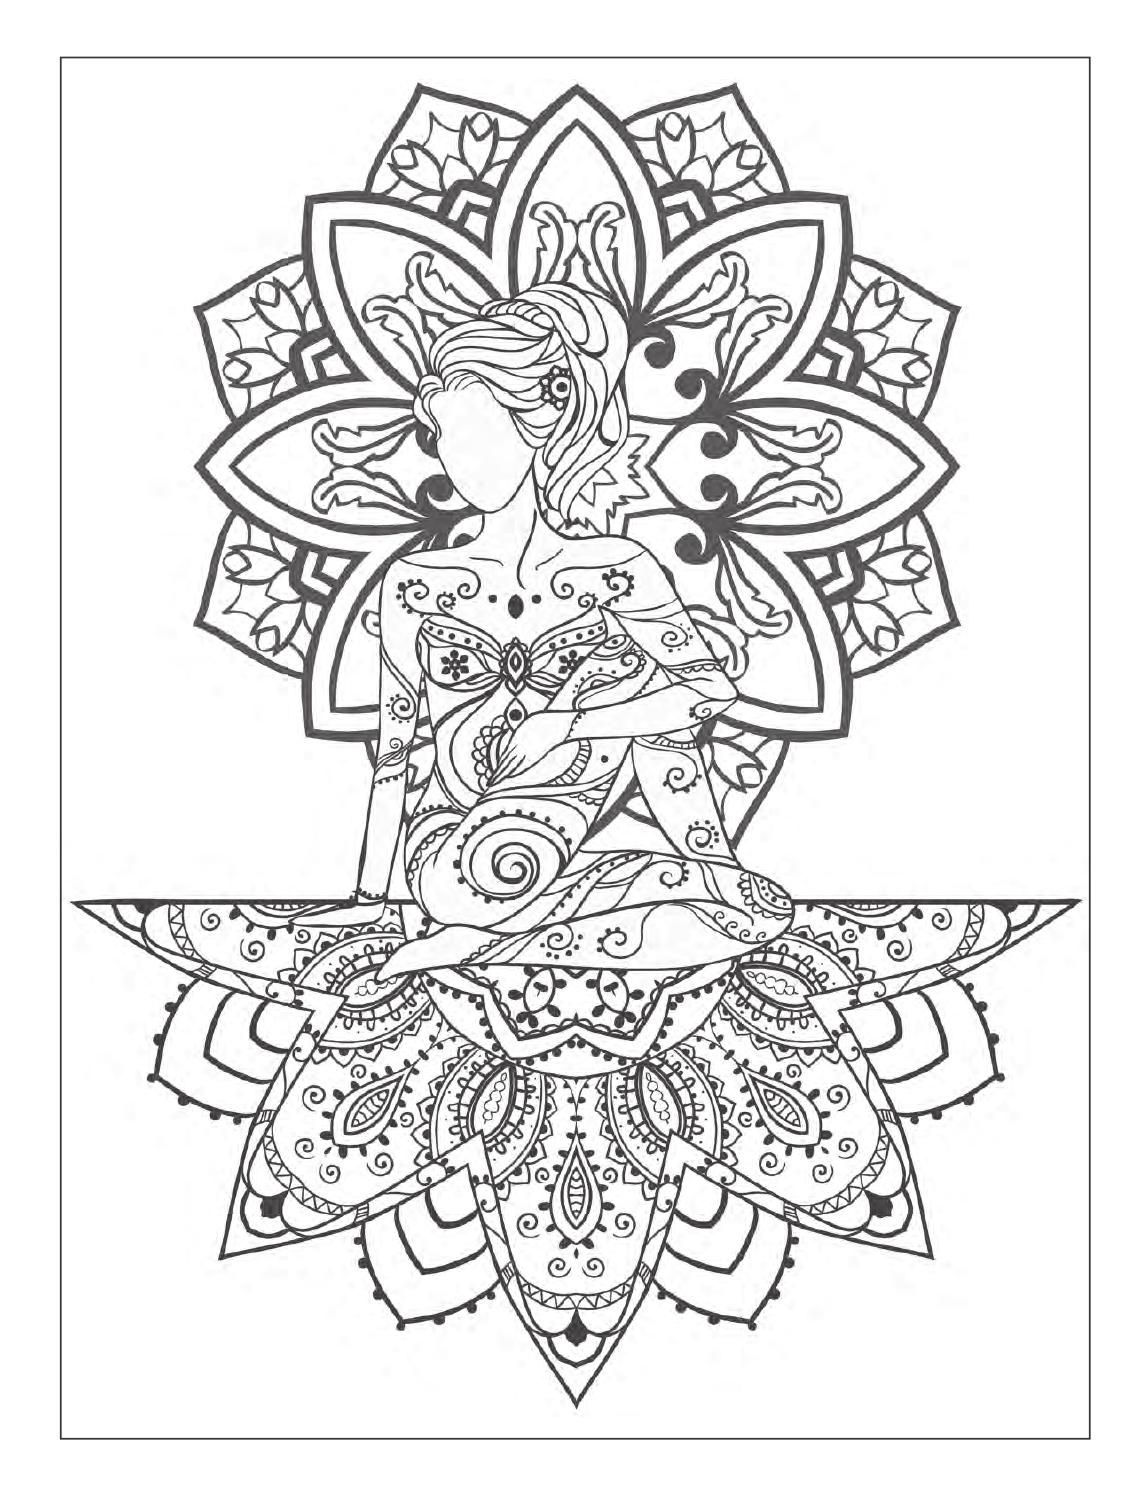 This Is A Free Preview Of The Book Yoga And Meditation Coloring Book For Adults With Yoga Poses Mandala Coloring Pages Mandala Coloring Books Coloring Pages